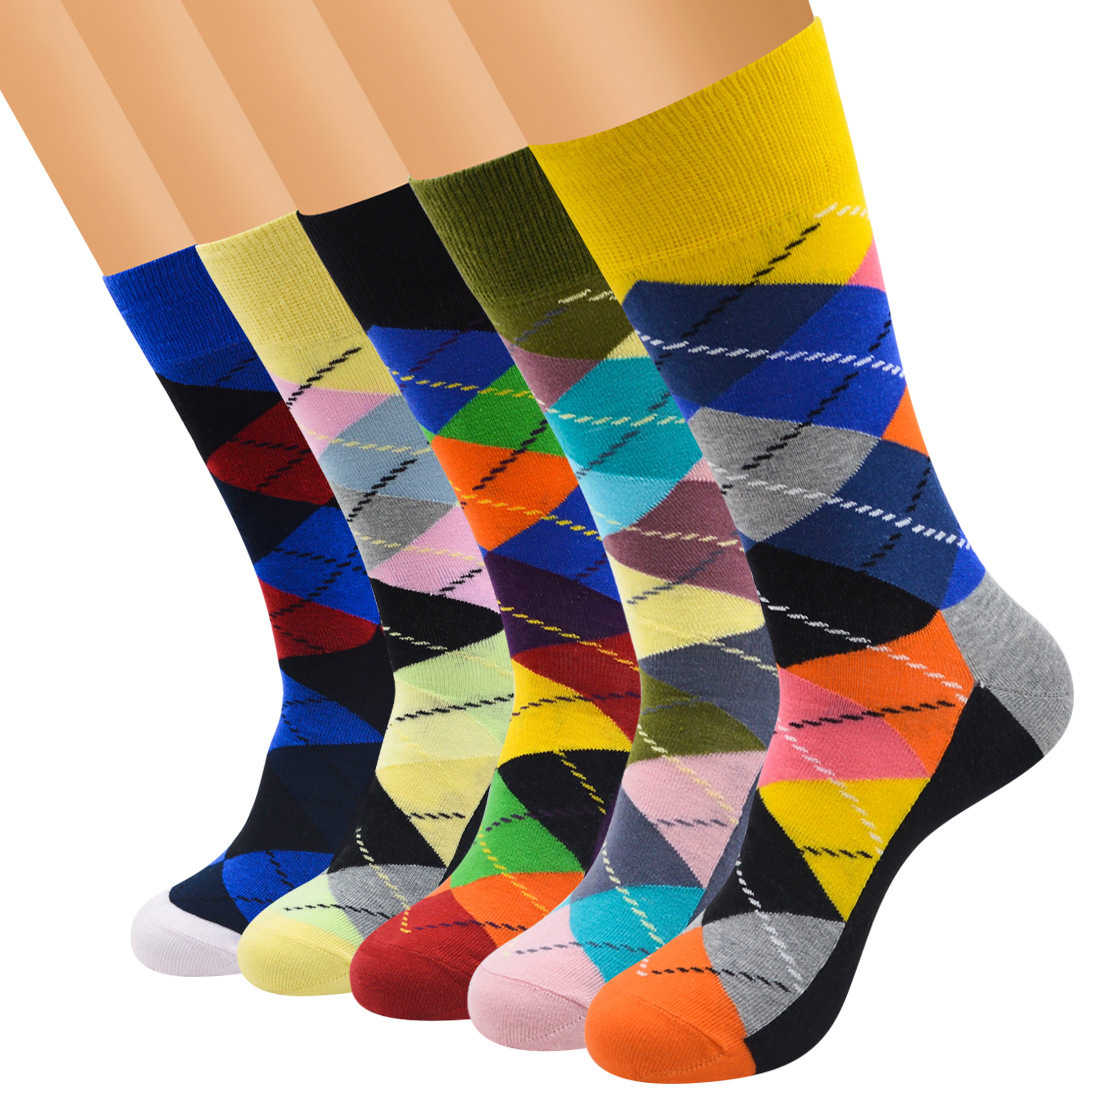 New Arrival Cotton Plaid Large Size Men In The Tube Tide Socks Keep Warm Mens Socks Novelty Socks